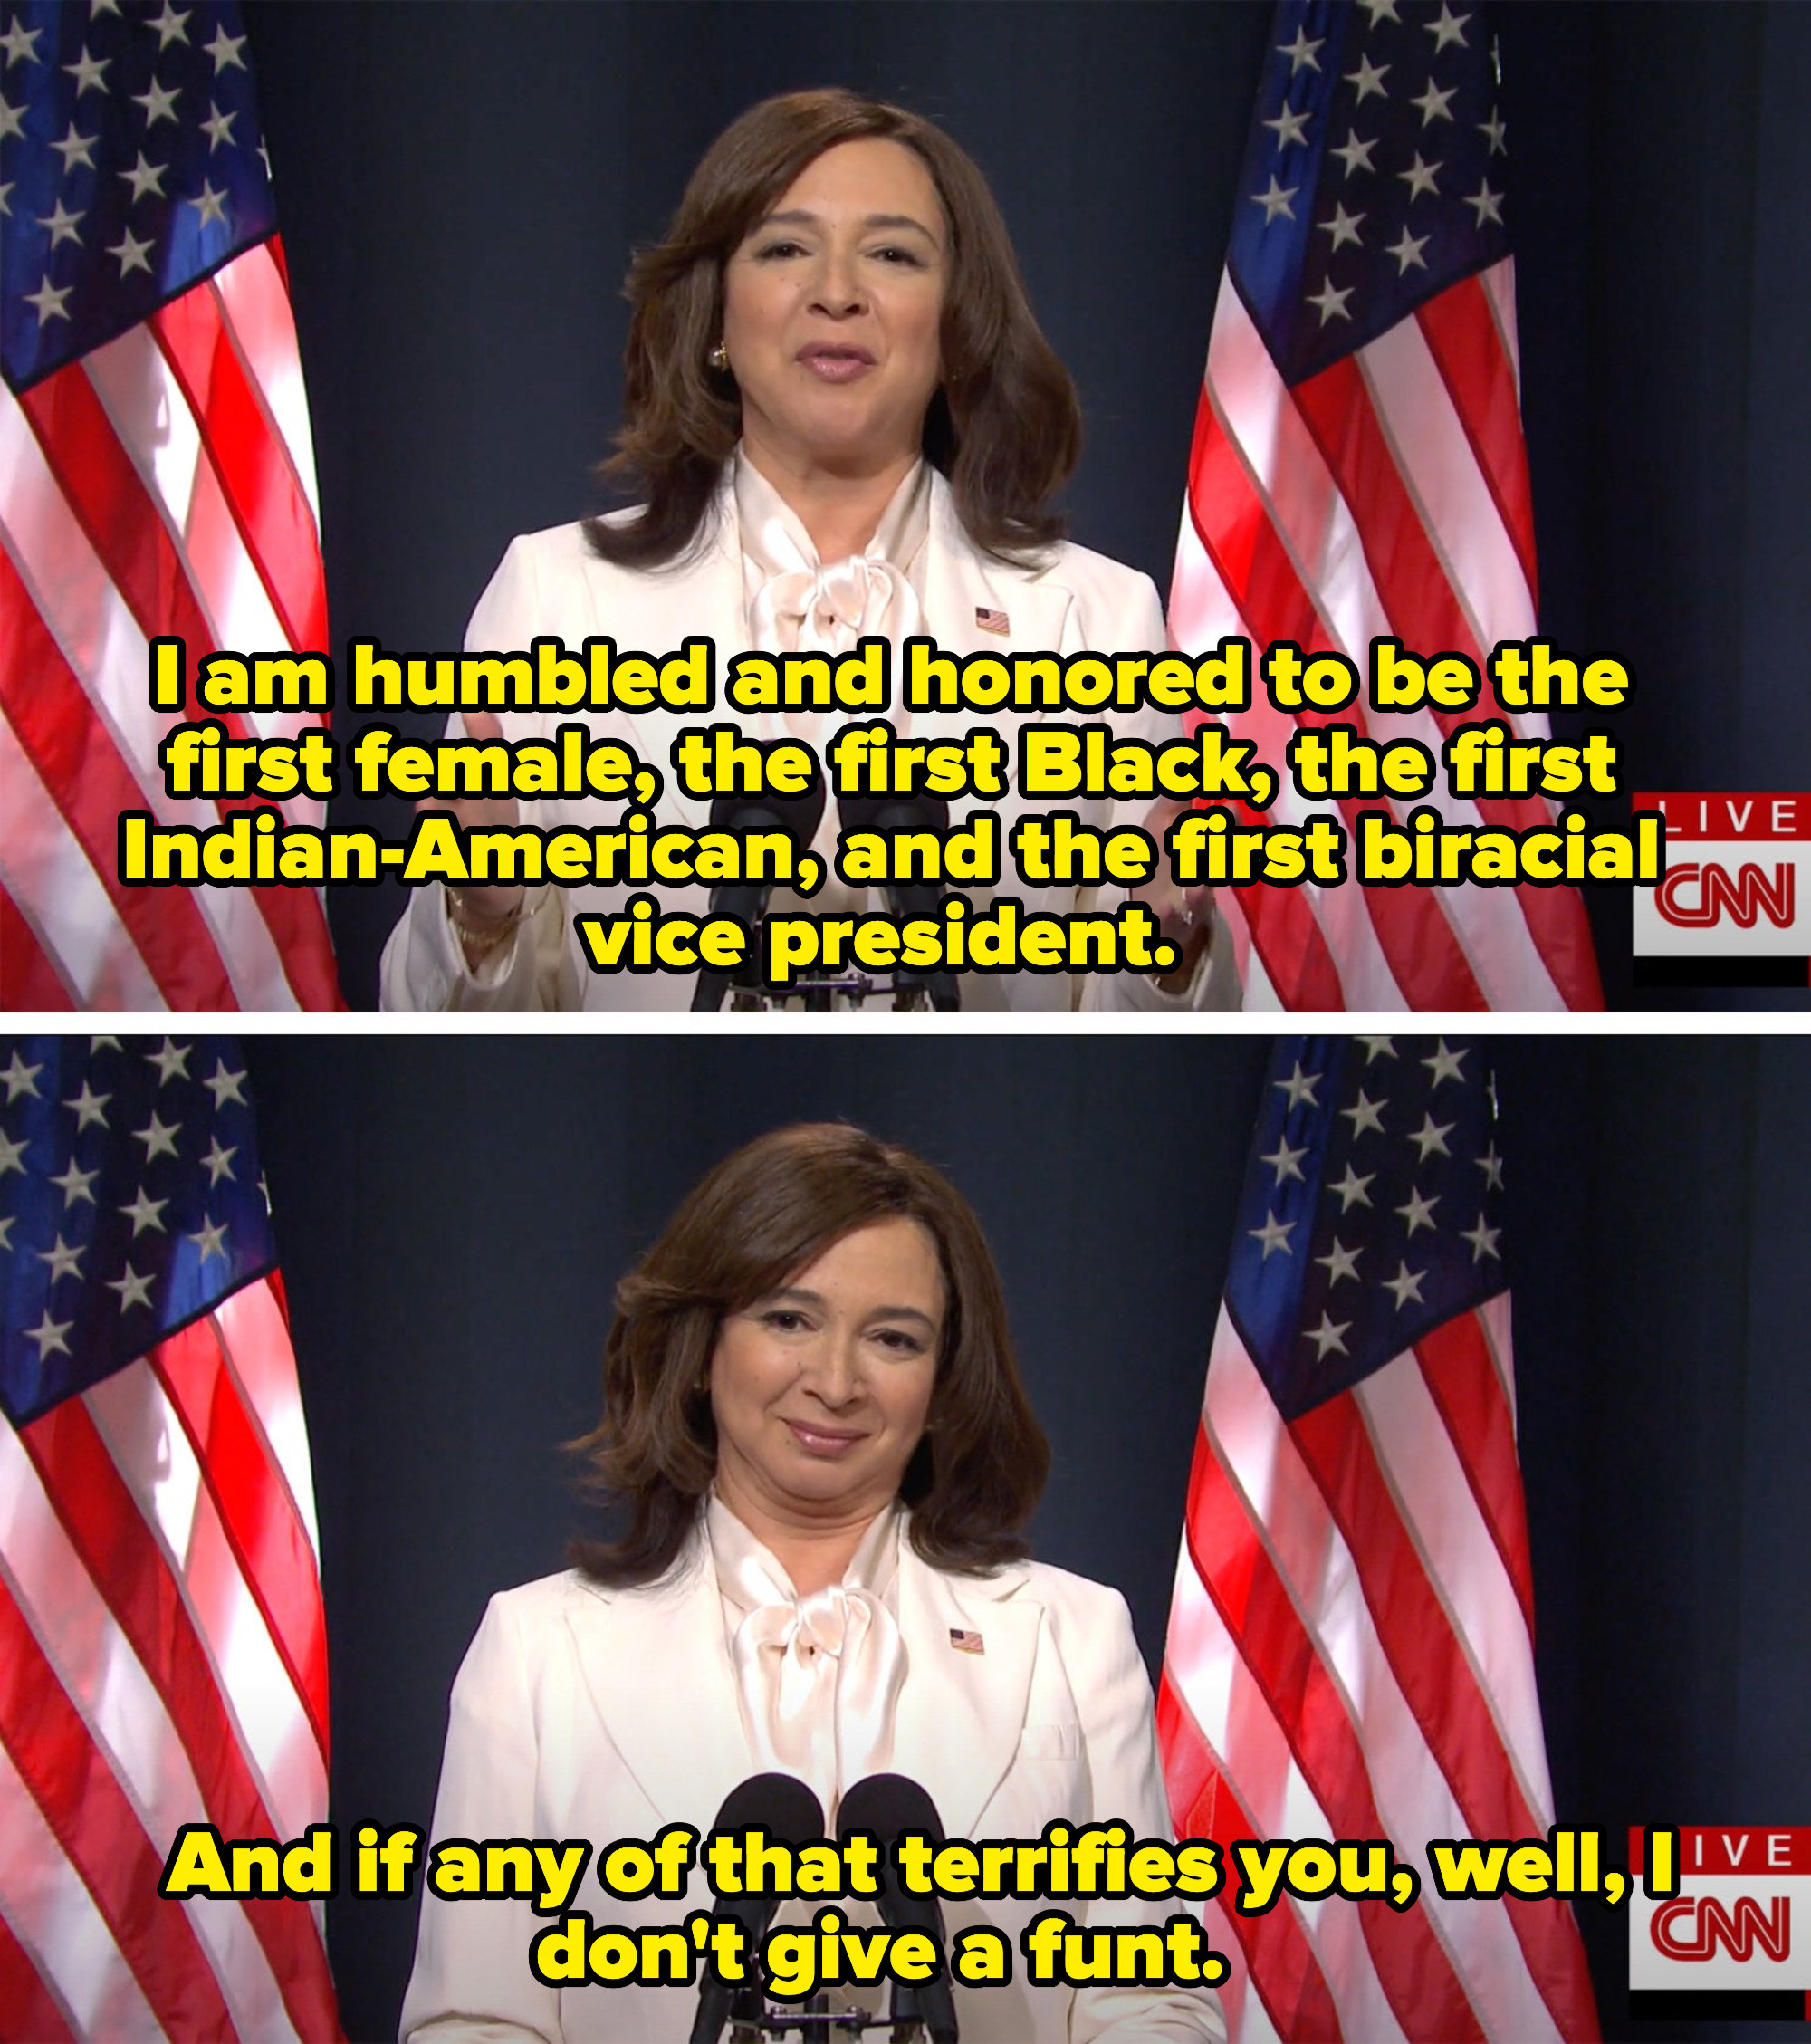 Harris saying she's proud to be the first Black, female, Indian-American, and biracial VP and that she doesn't give a funt if it scares you